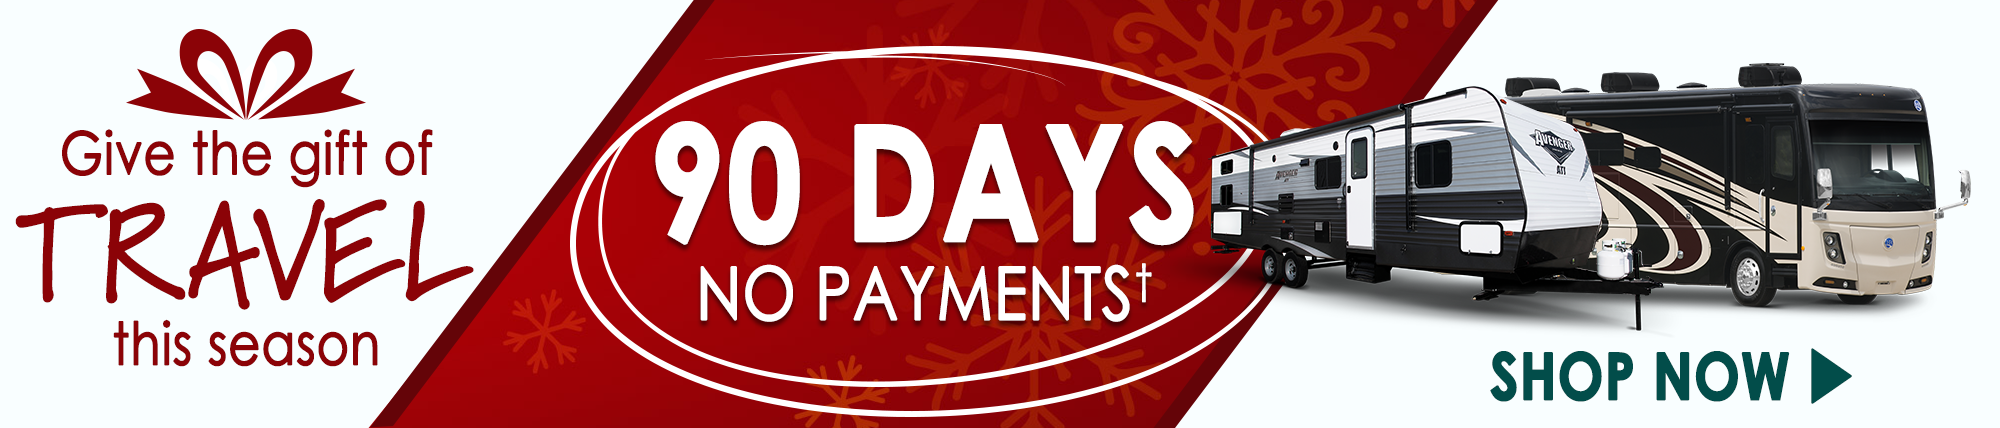 90 Days No Payments!